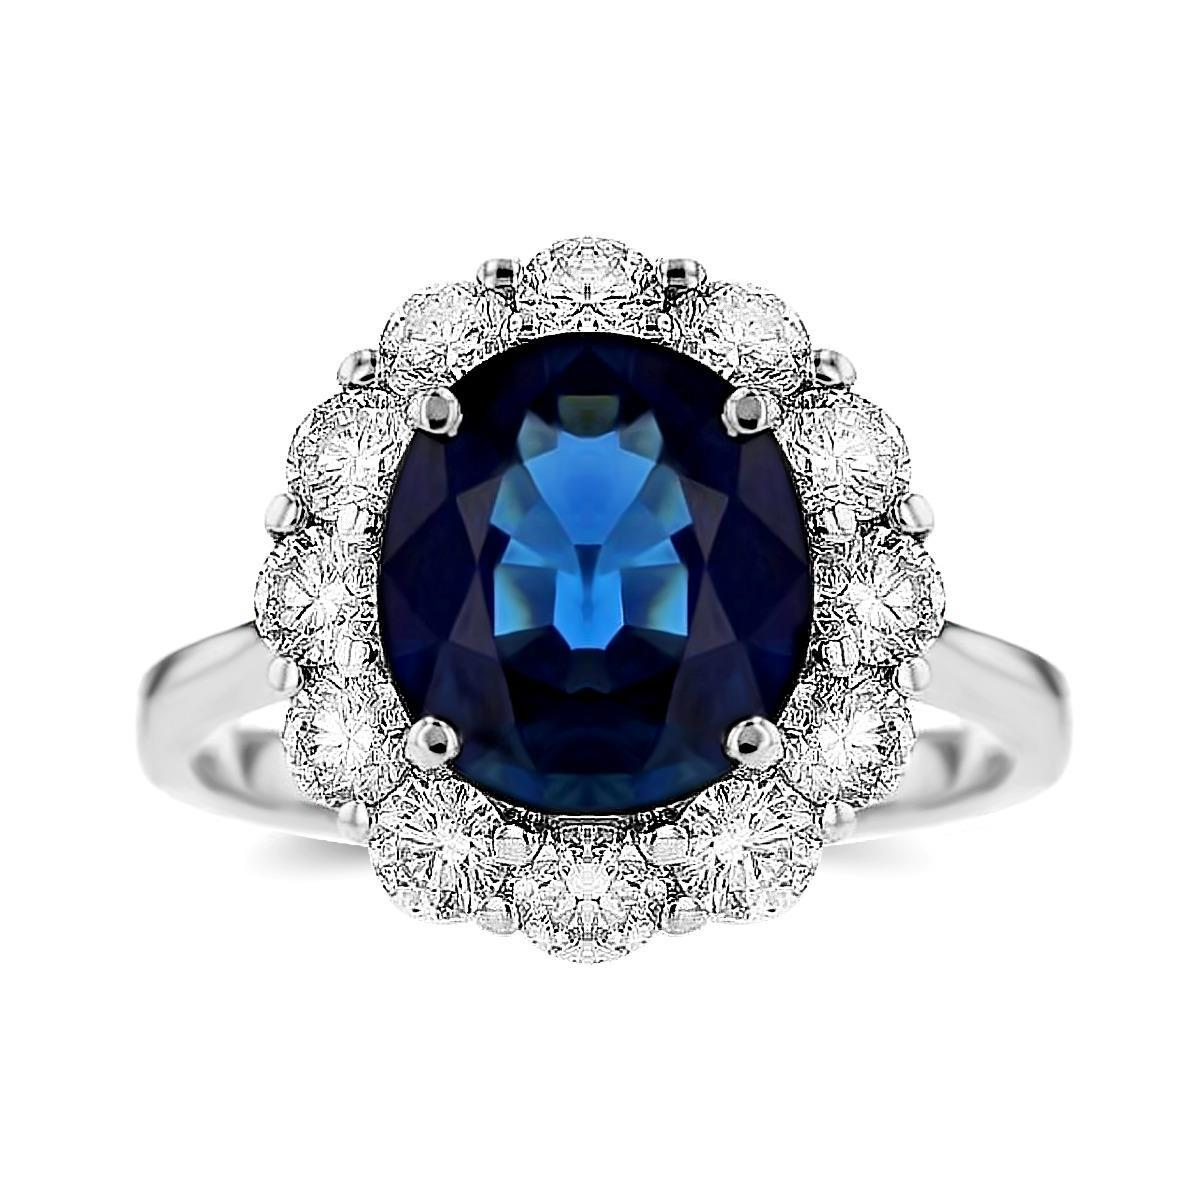 2.63ct Oval Sapphire & Diamond Cluster Ring | 18K White Gold